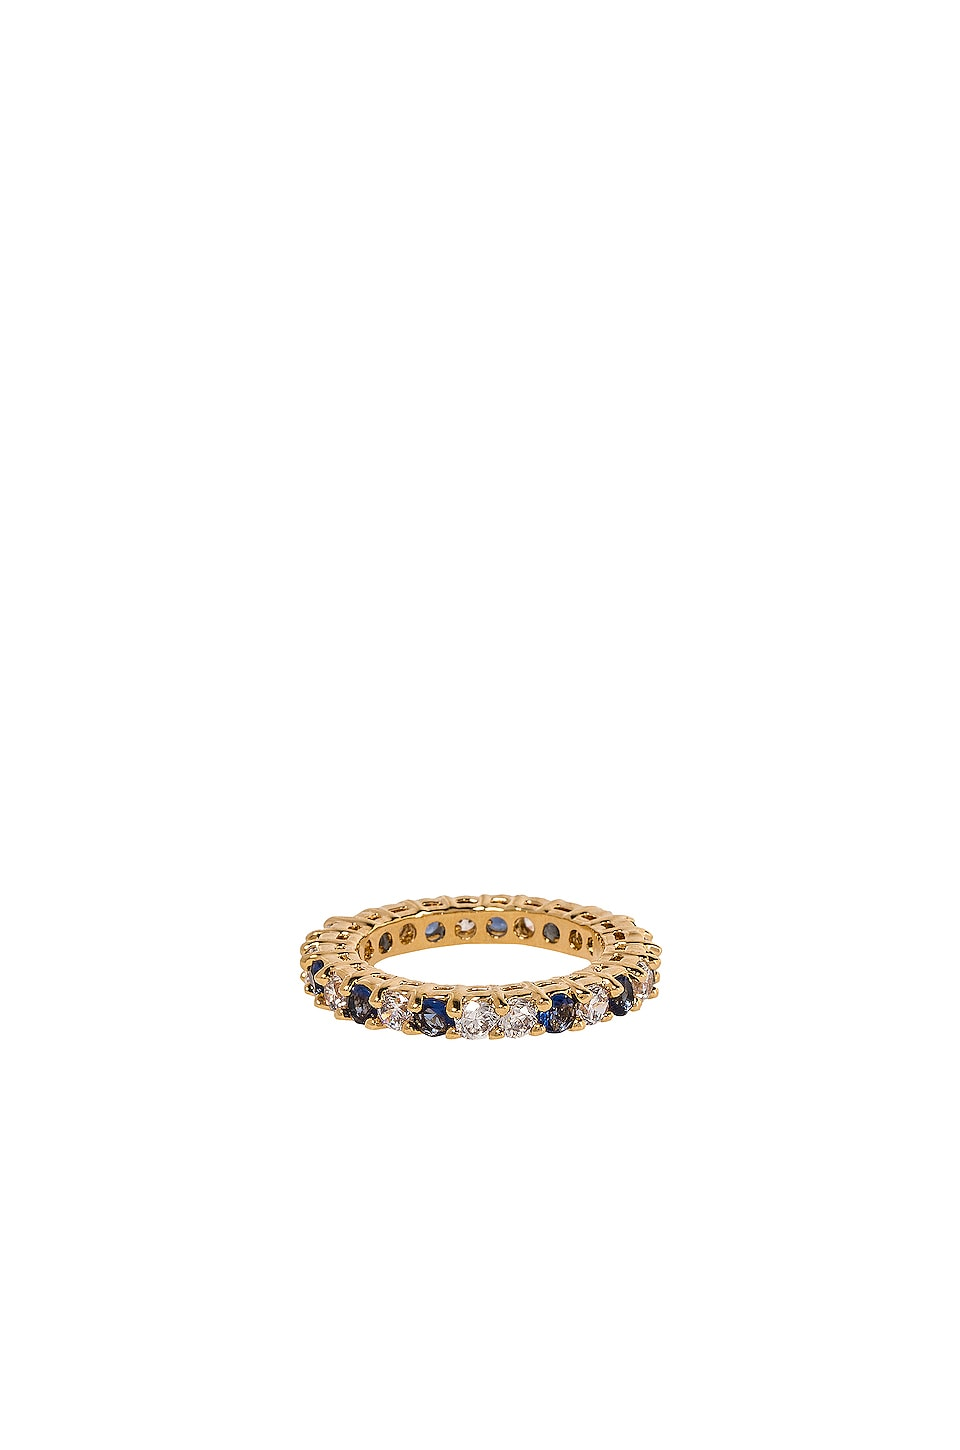 Vanessa Mooney The Centerfold Ring in Gold & Blue